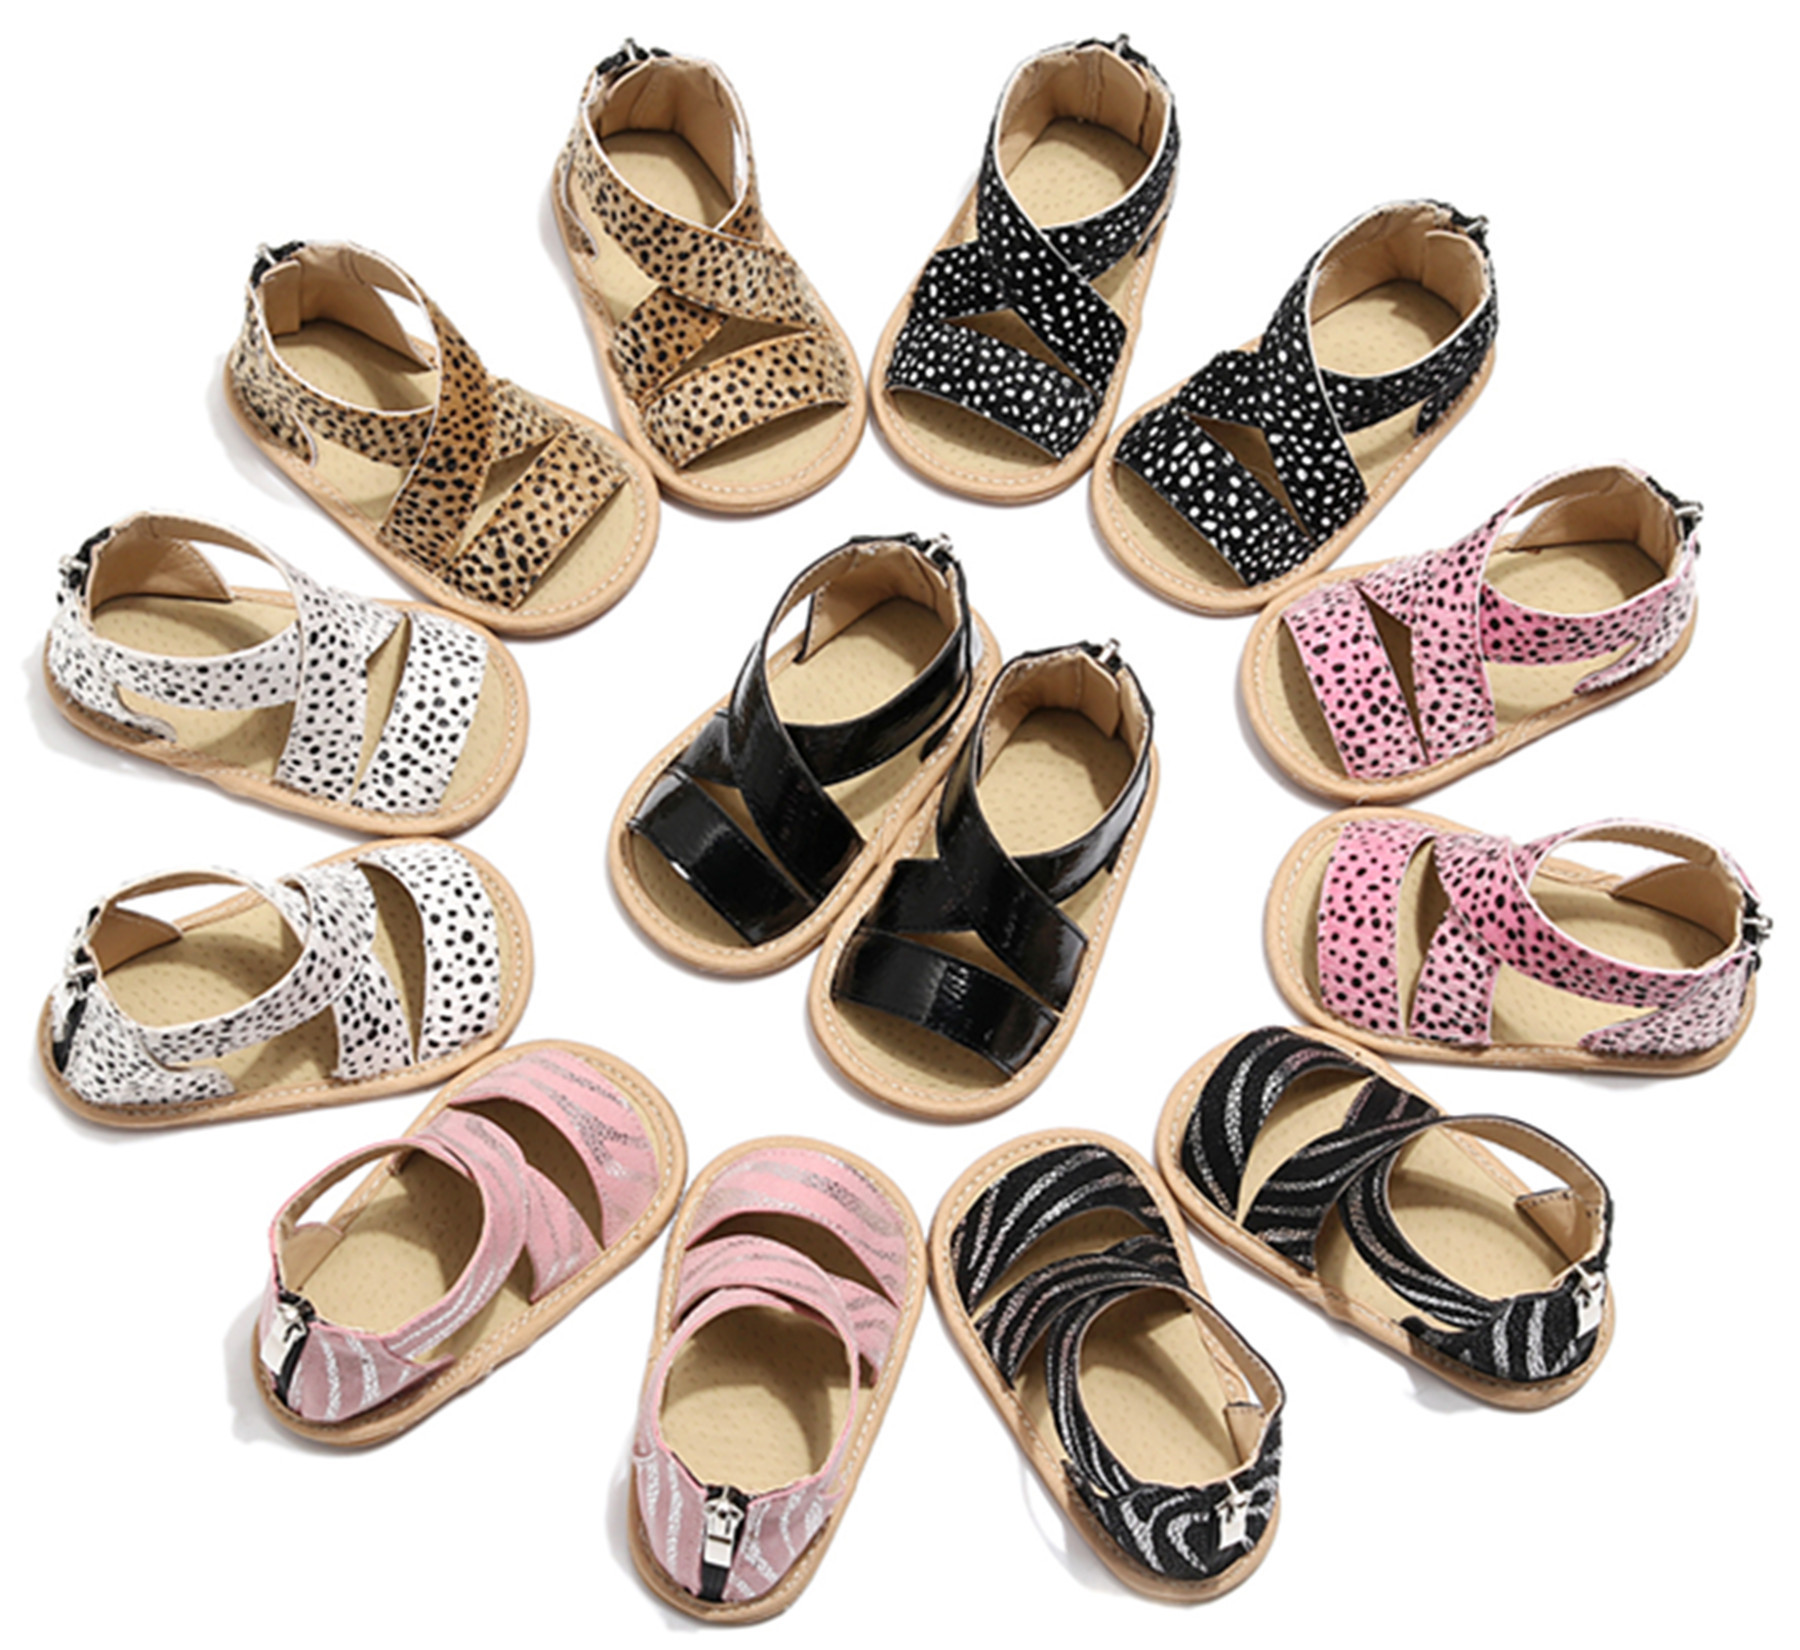 2020 European and American Popular Leopard Print Baby Sandals Infant Toddler Crib Shoes Soft Baby First Walkers Baby Moccasins | Happy Baby Mama